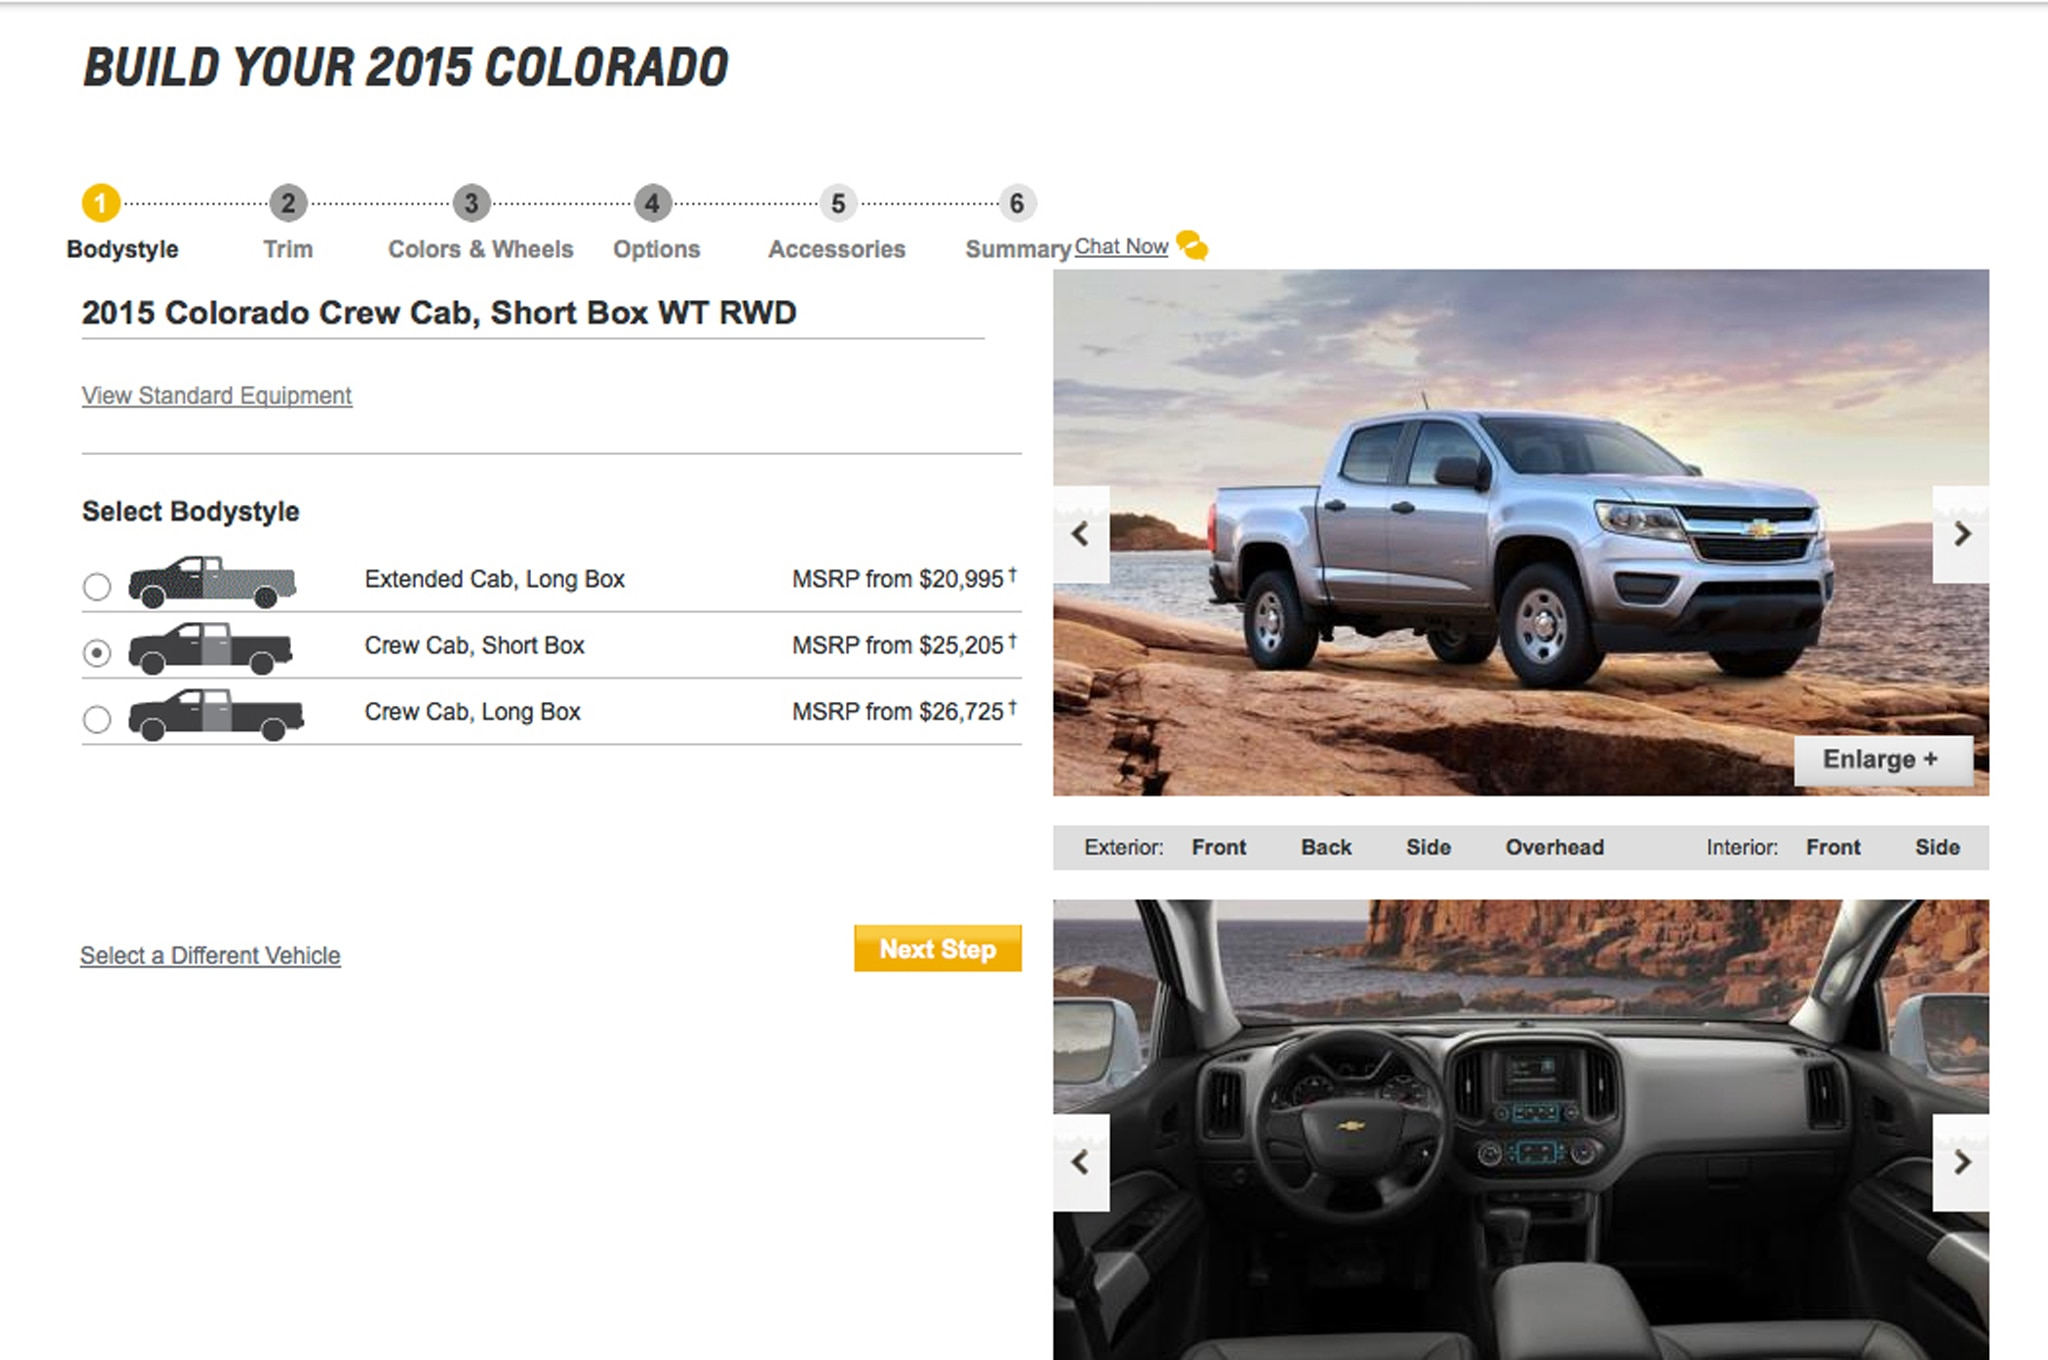 2015 Chevrolet Colorado Build Your Own